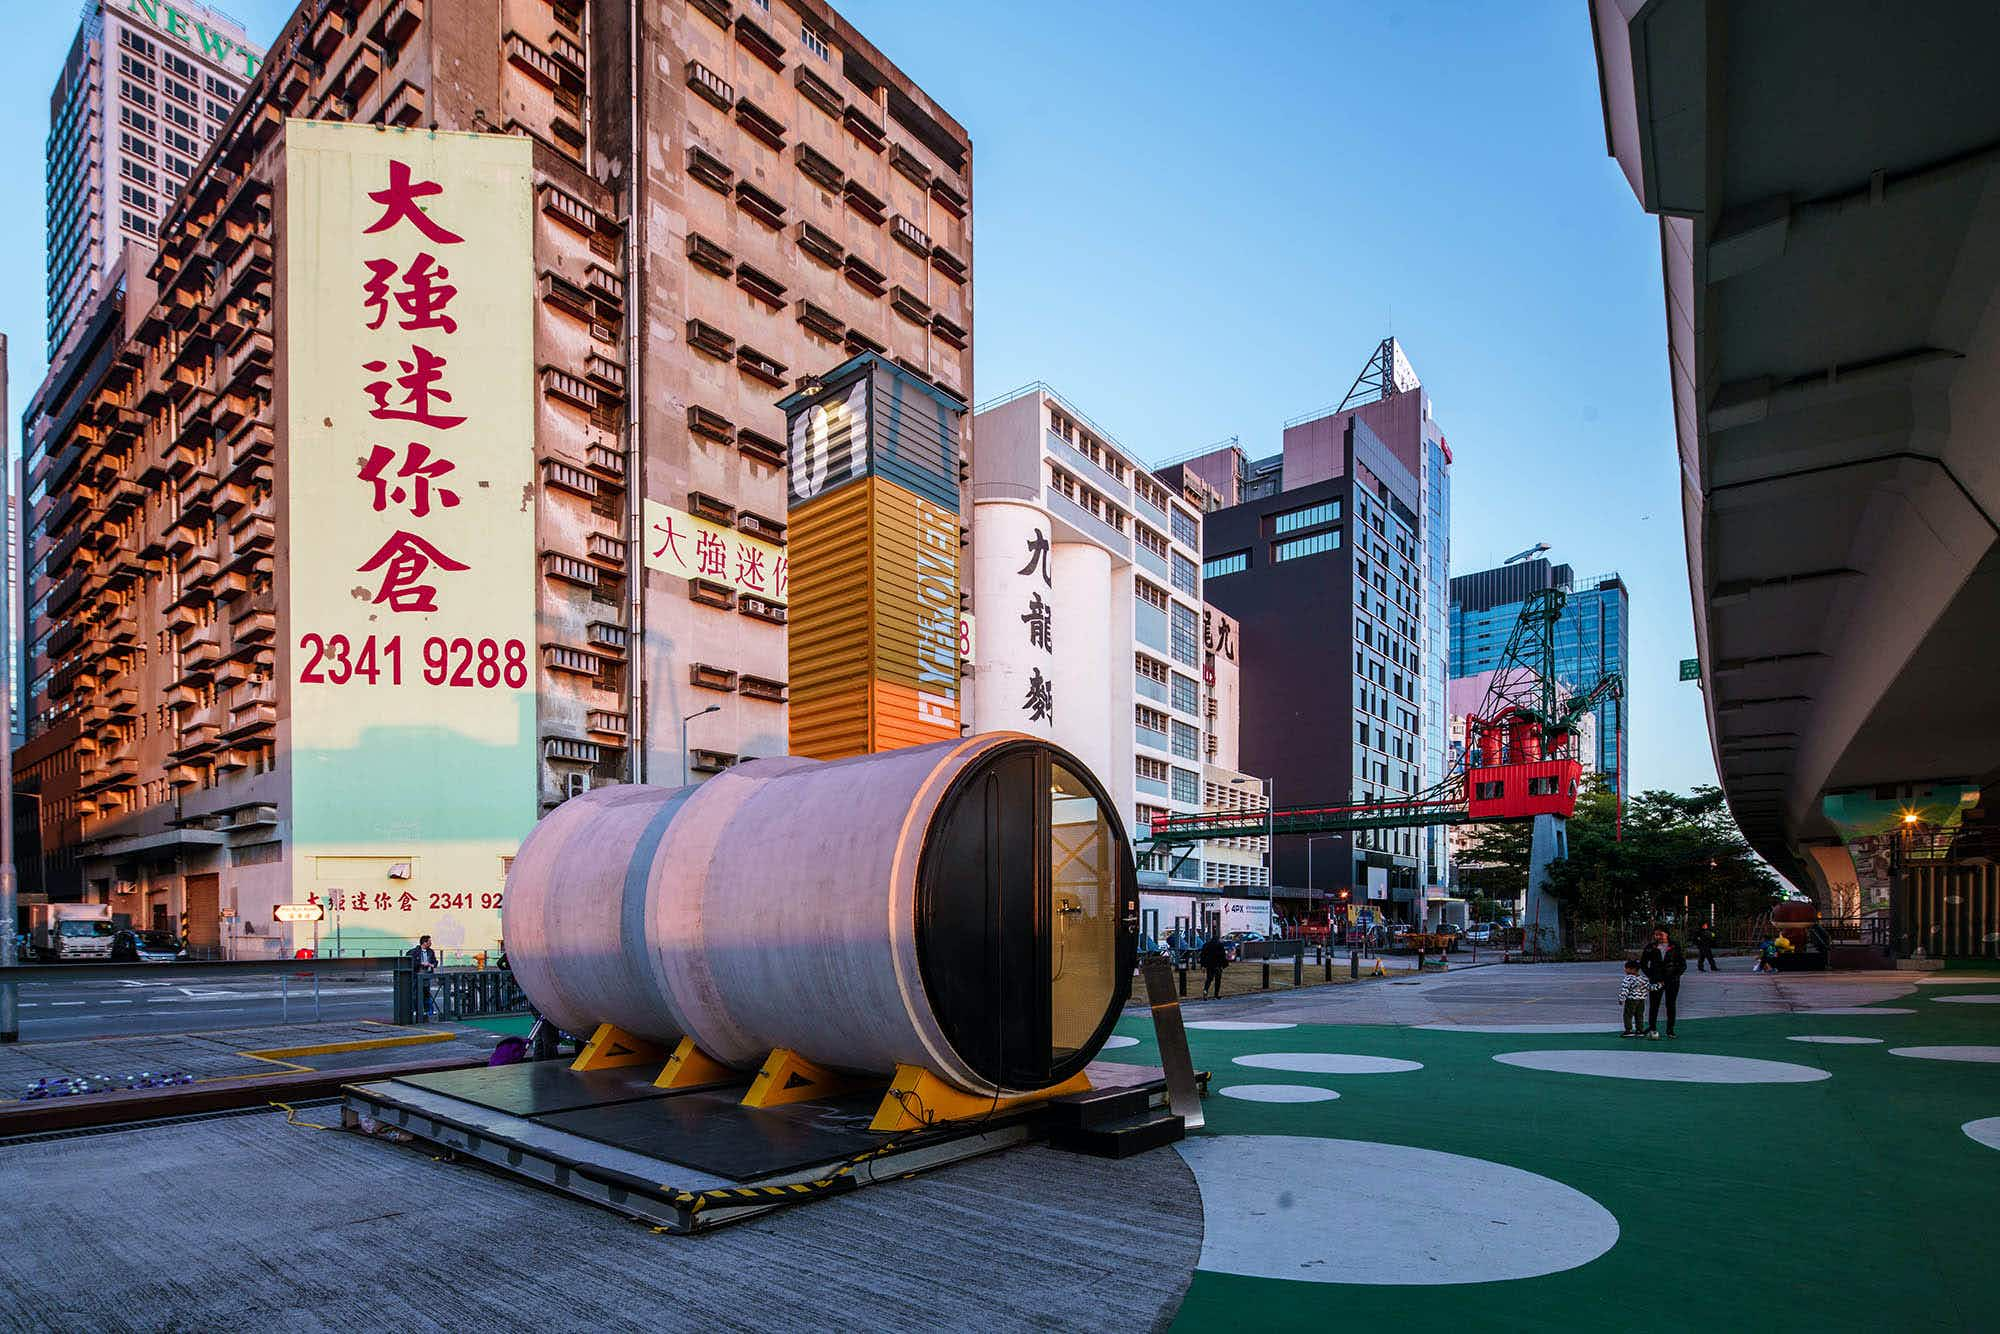 Would you spend the night in a concrete pipe in Hong Kong?